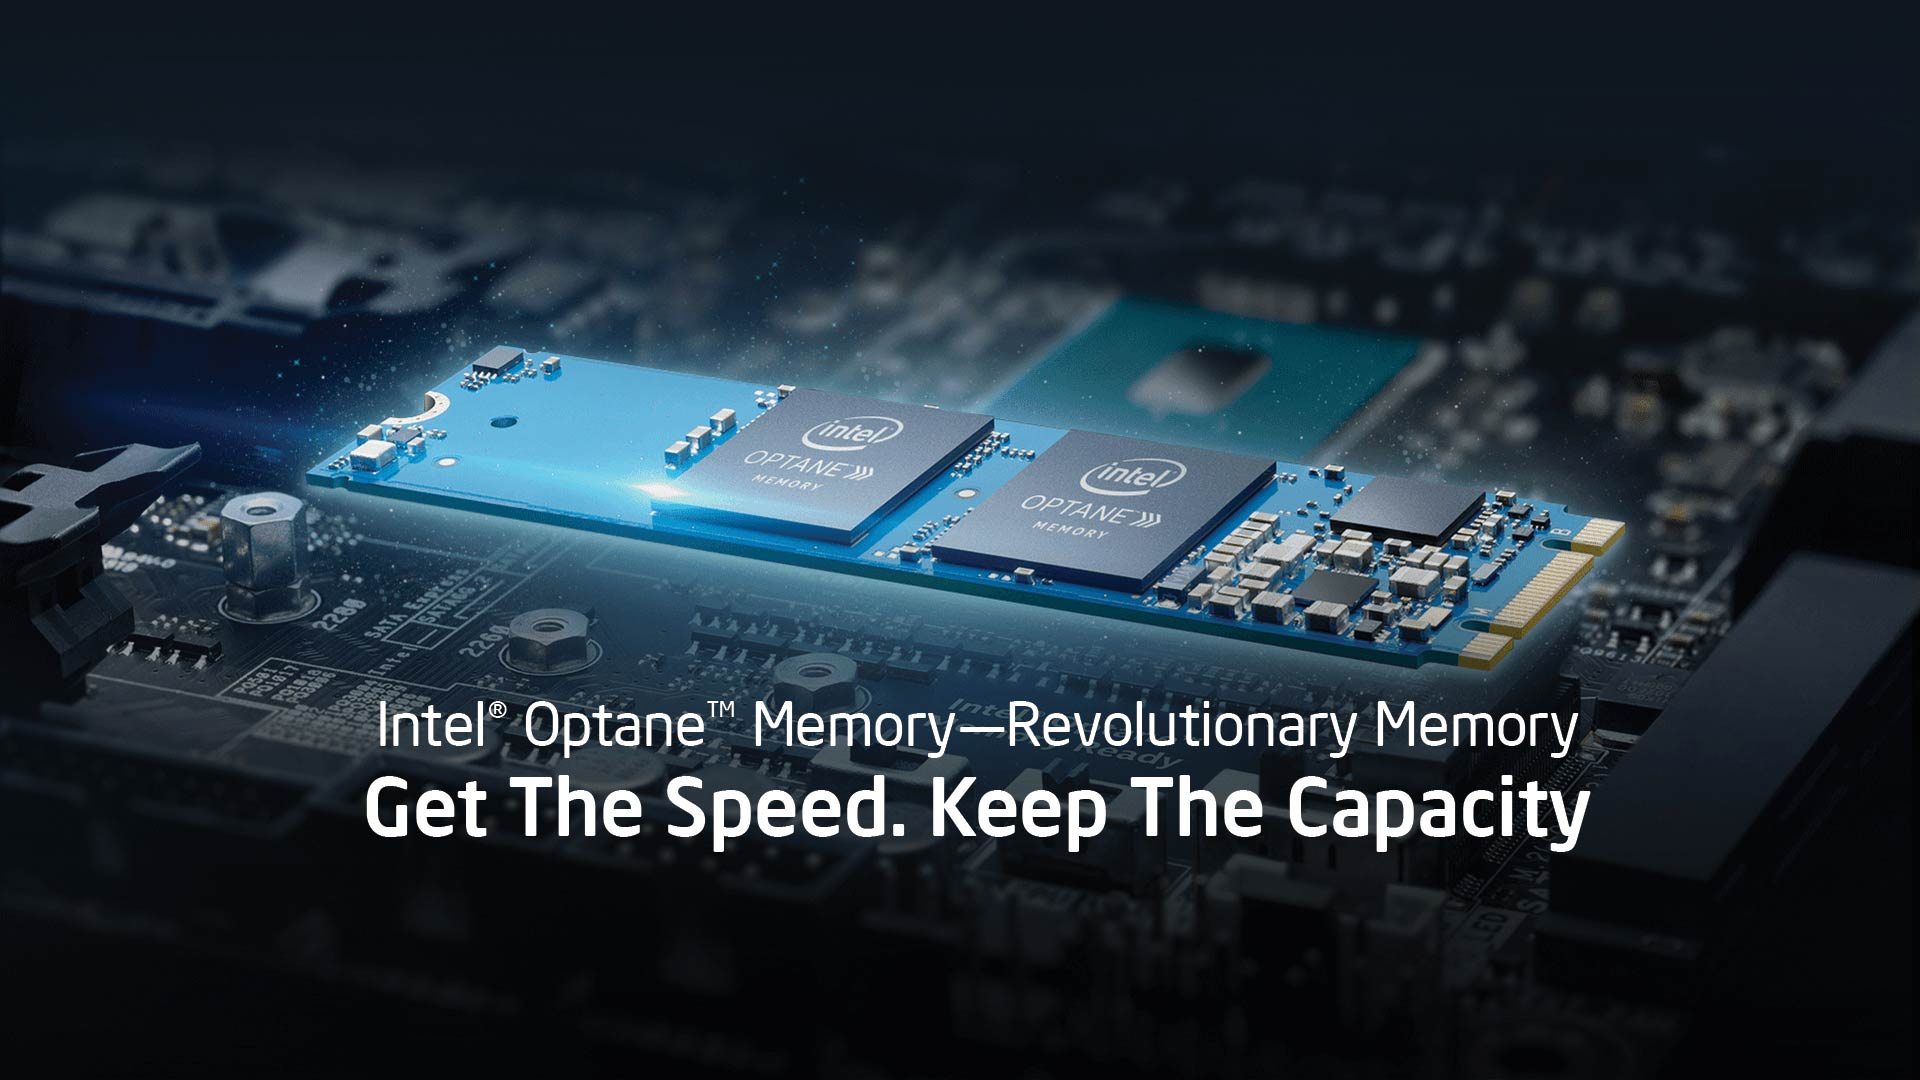 Intel® Optane Memory—Revolutionary Memory